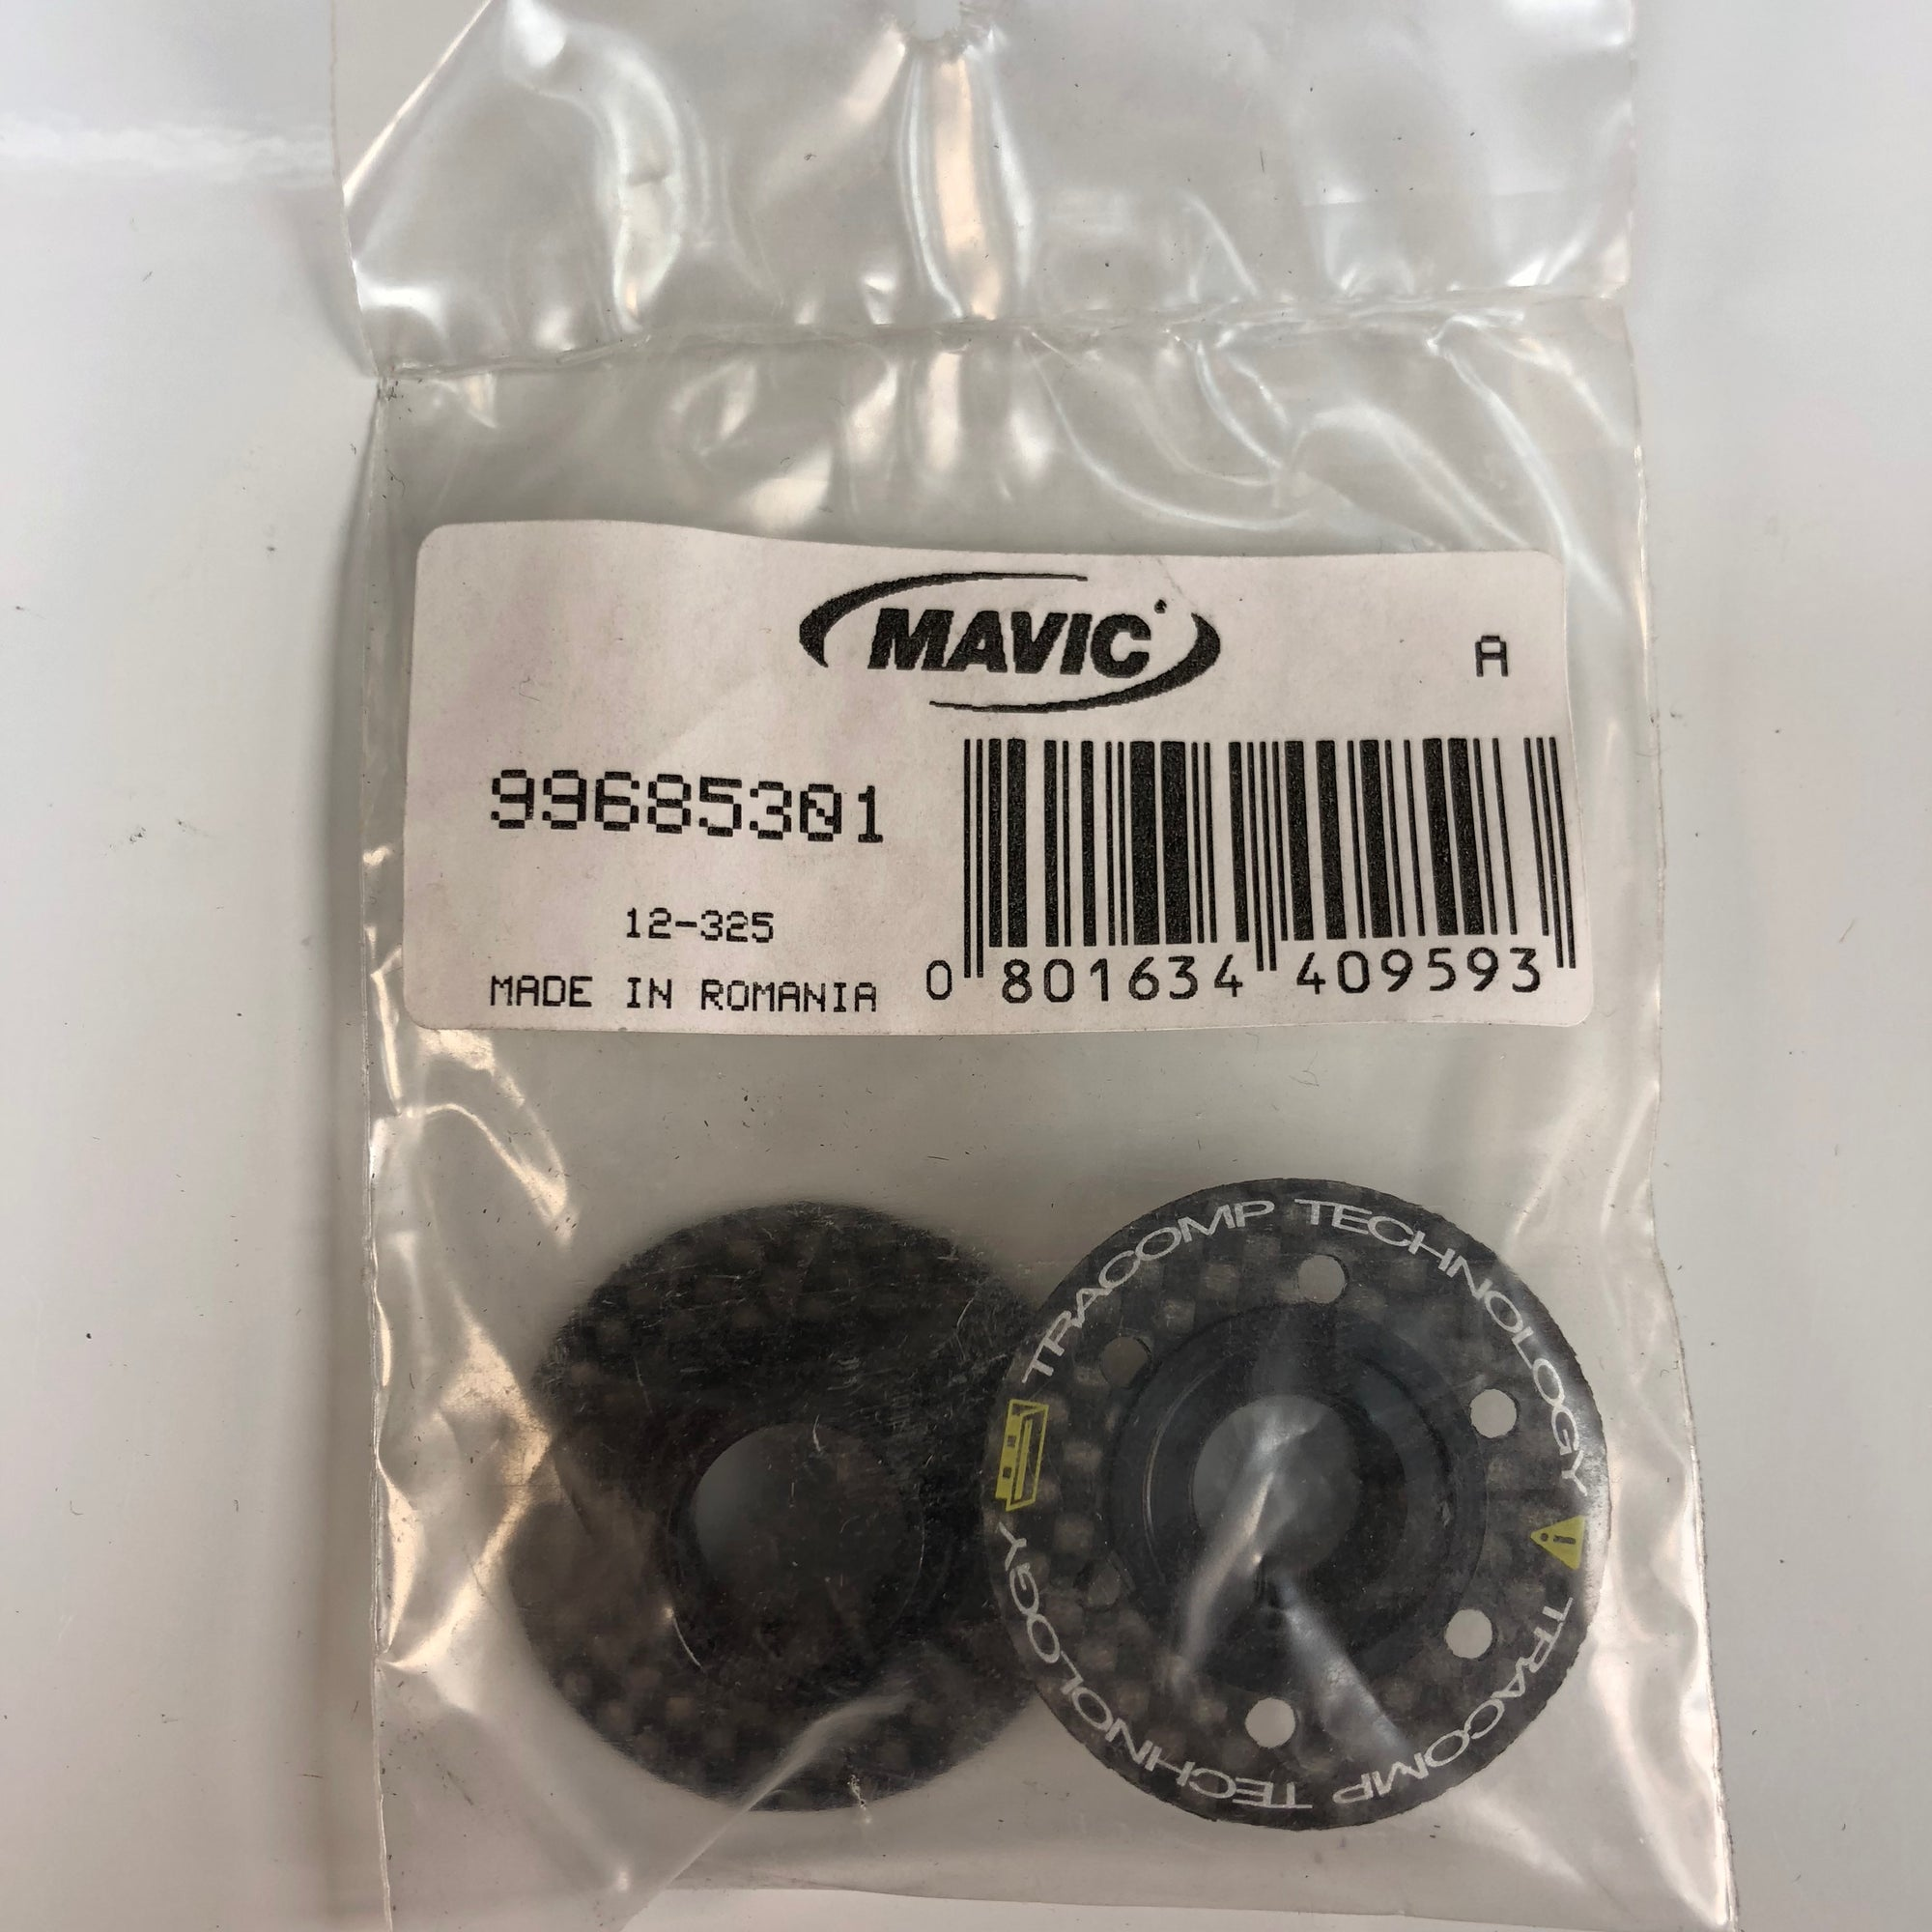 Mavic Adjust Nut and Cap R-SYS Carbon- 99685301